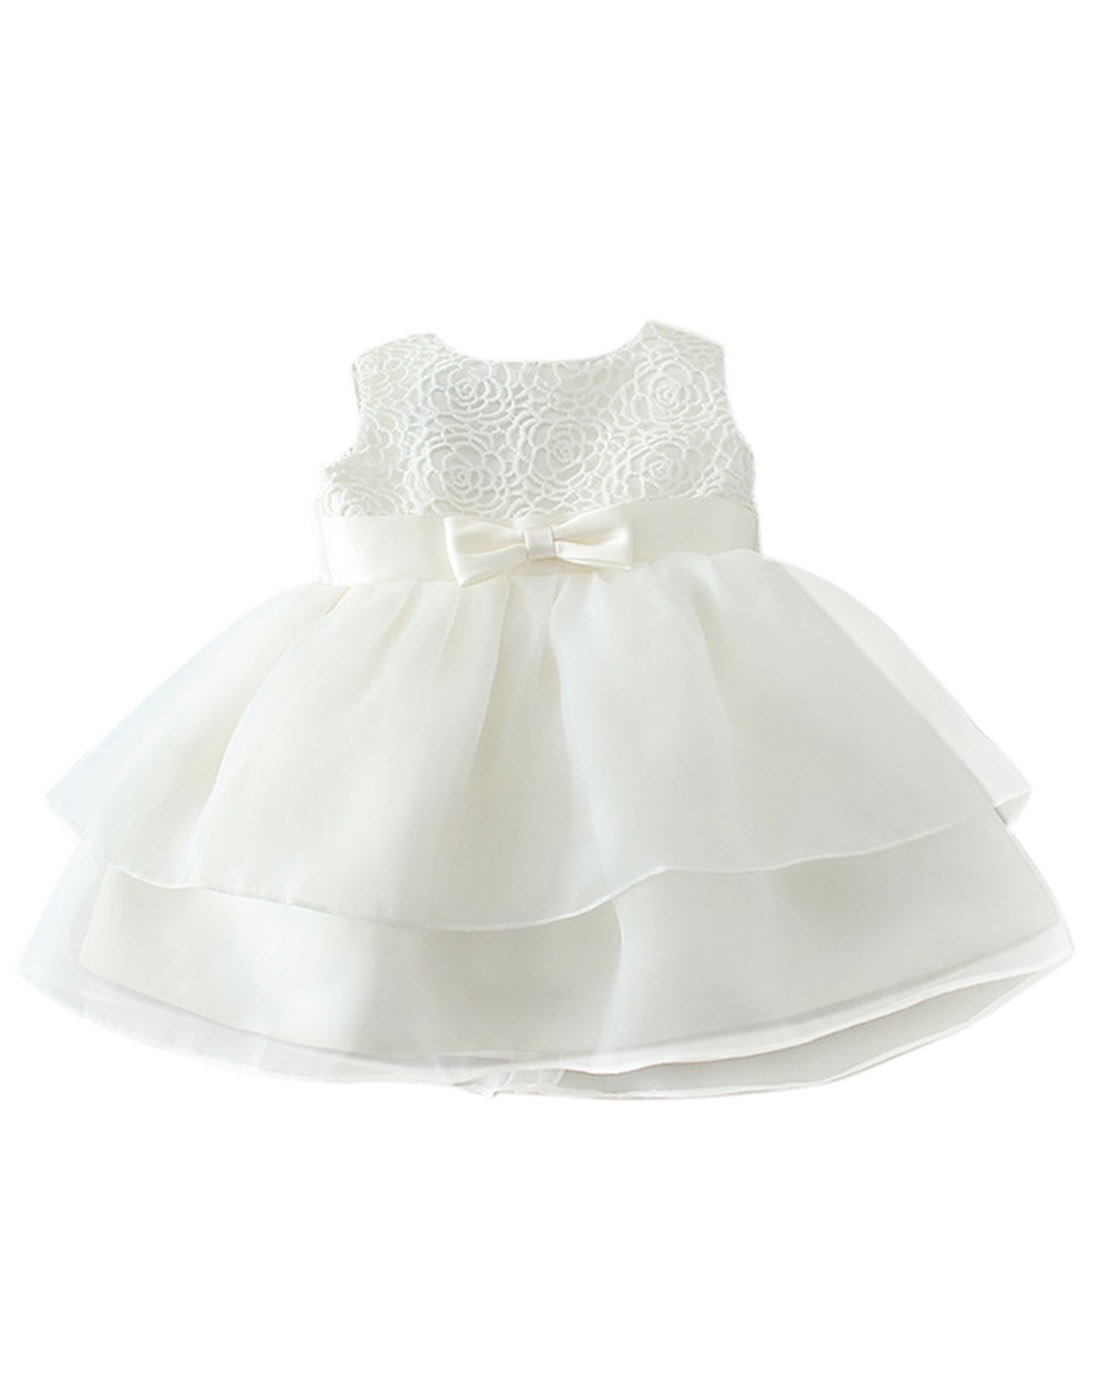 Baby Girl Princess Tulle Dress Floral Embroidery Wedding Party Pageant Dress Happy Cherry